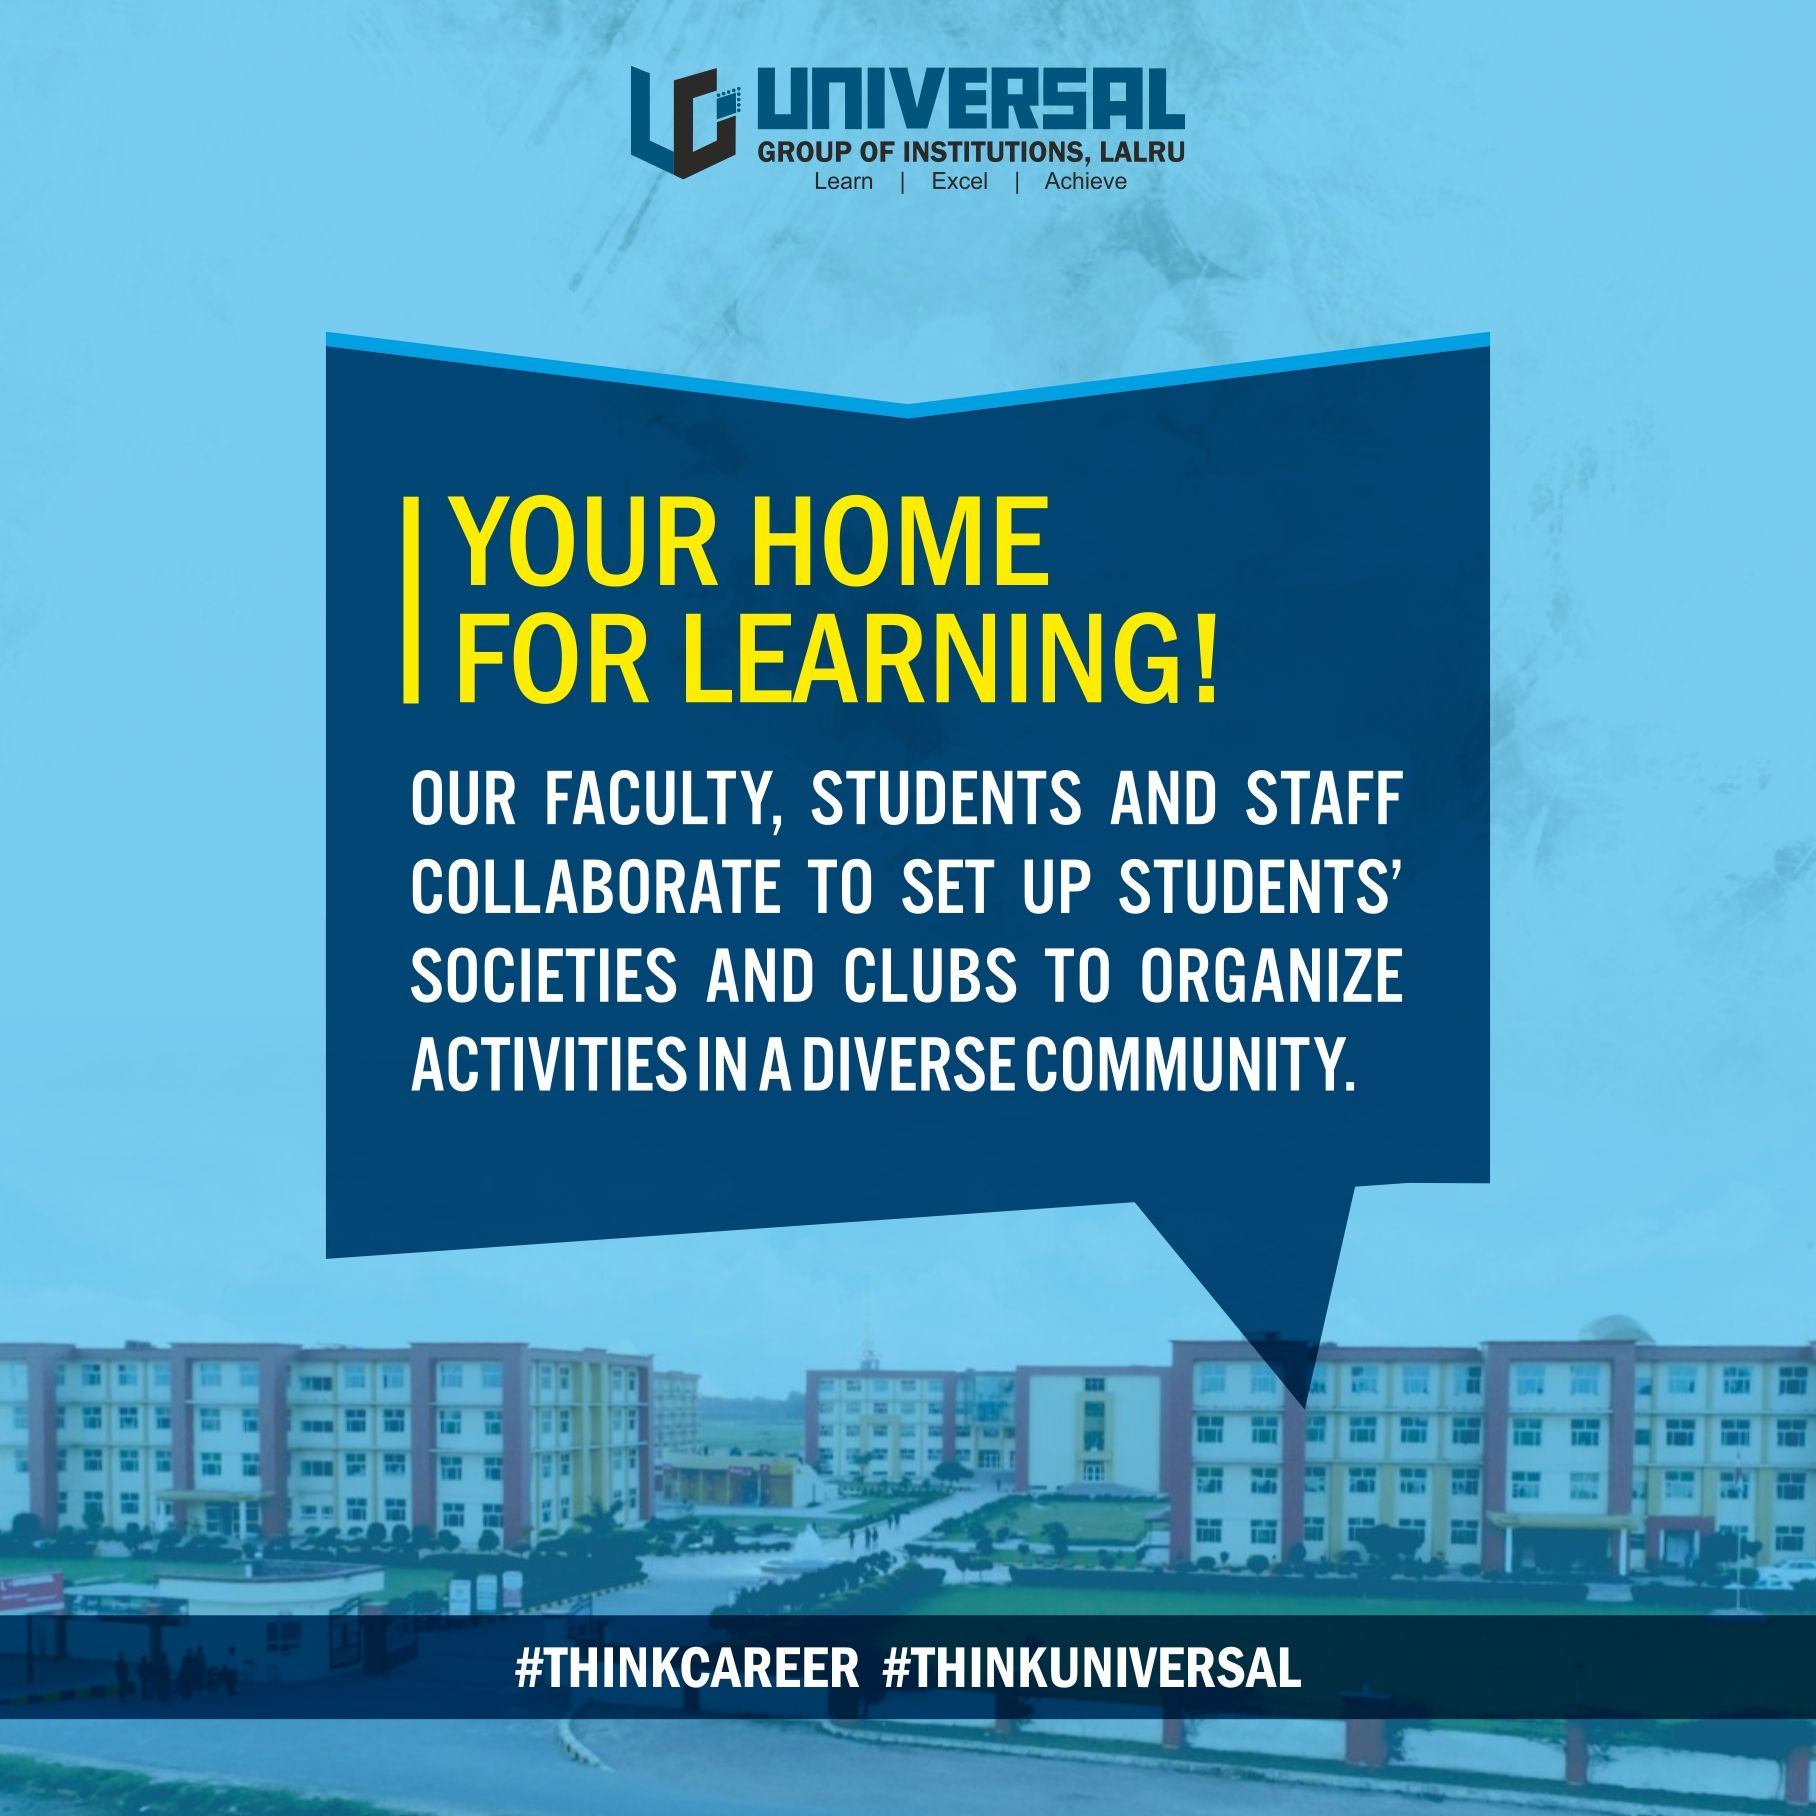 Welcome To Home Of Learning Universal Group Of